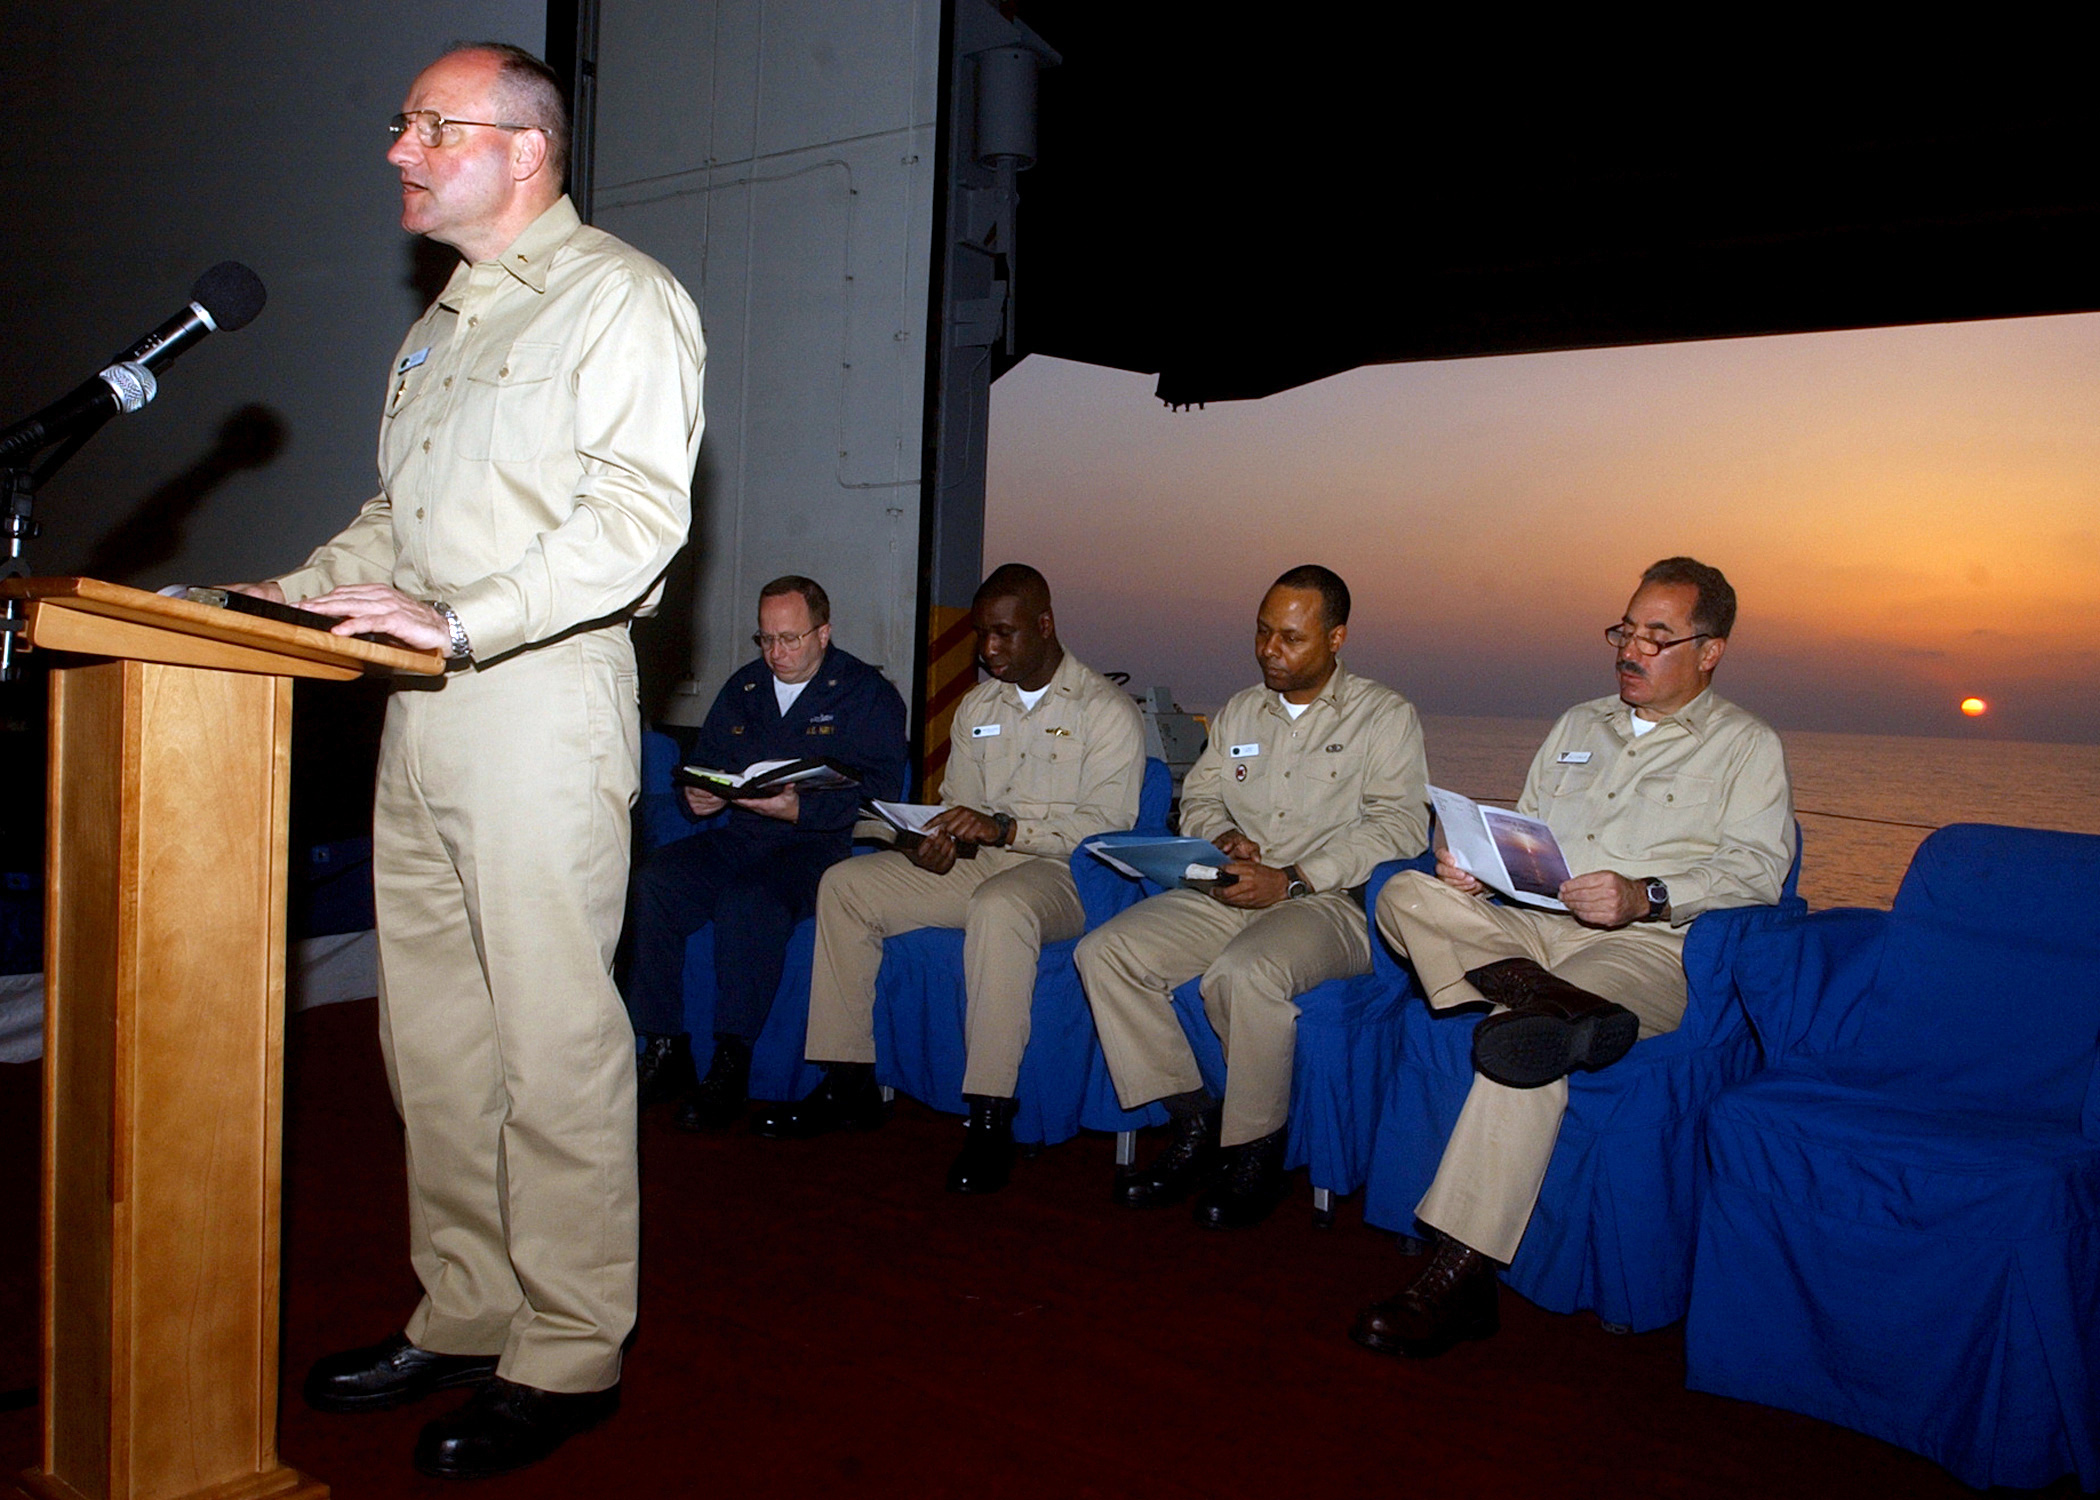 6363M-010 Chaplain, Cmdr. Donald Troast, gives opening remarks ...